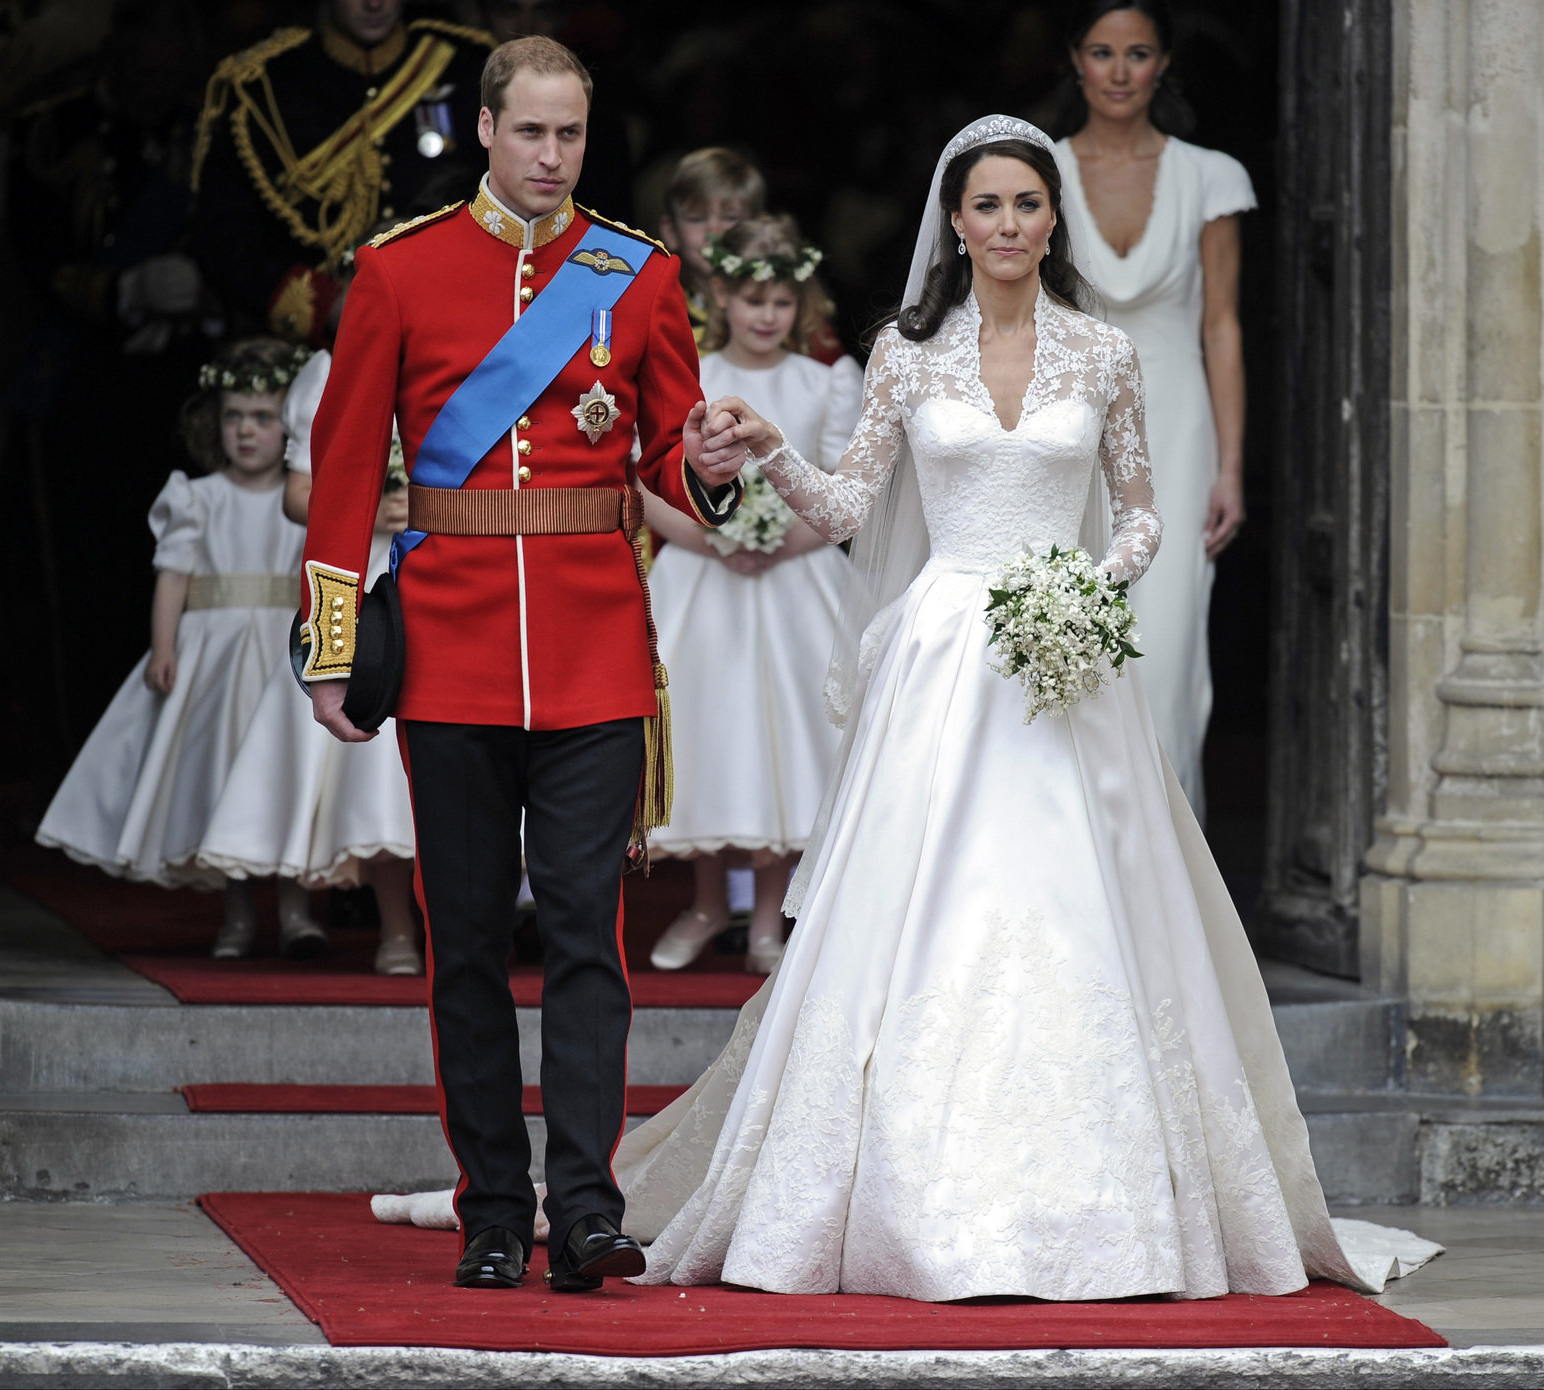 dressybridal whose royal wedding dress is your favorite